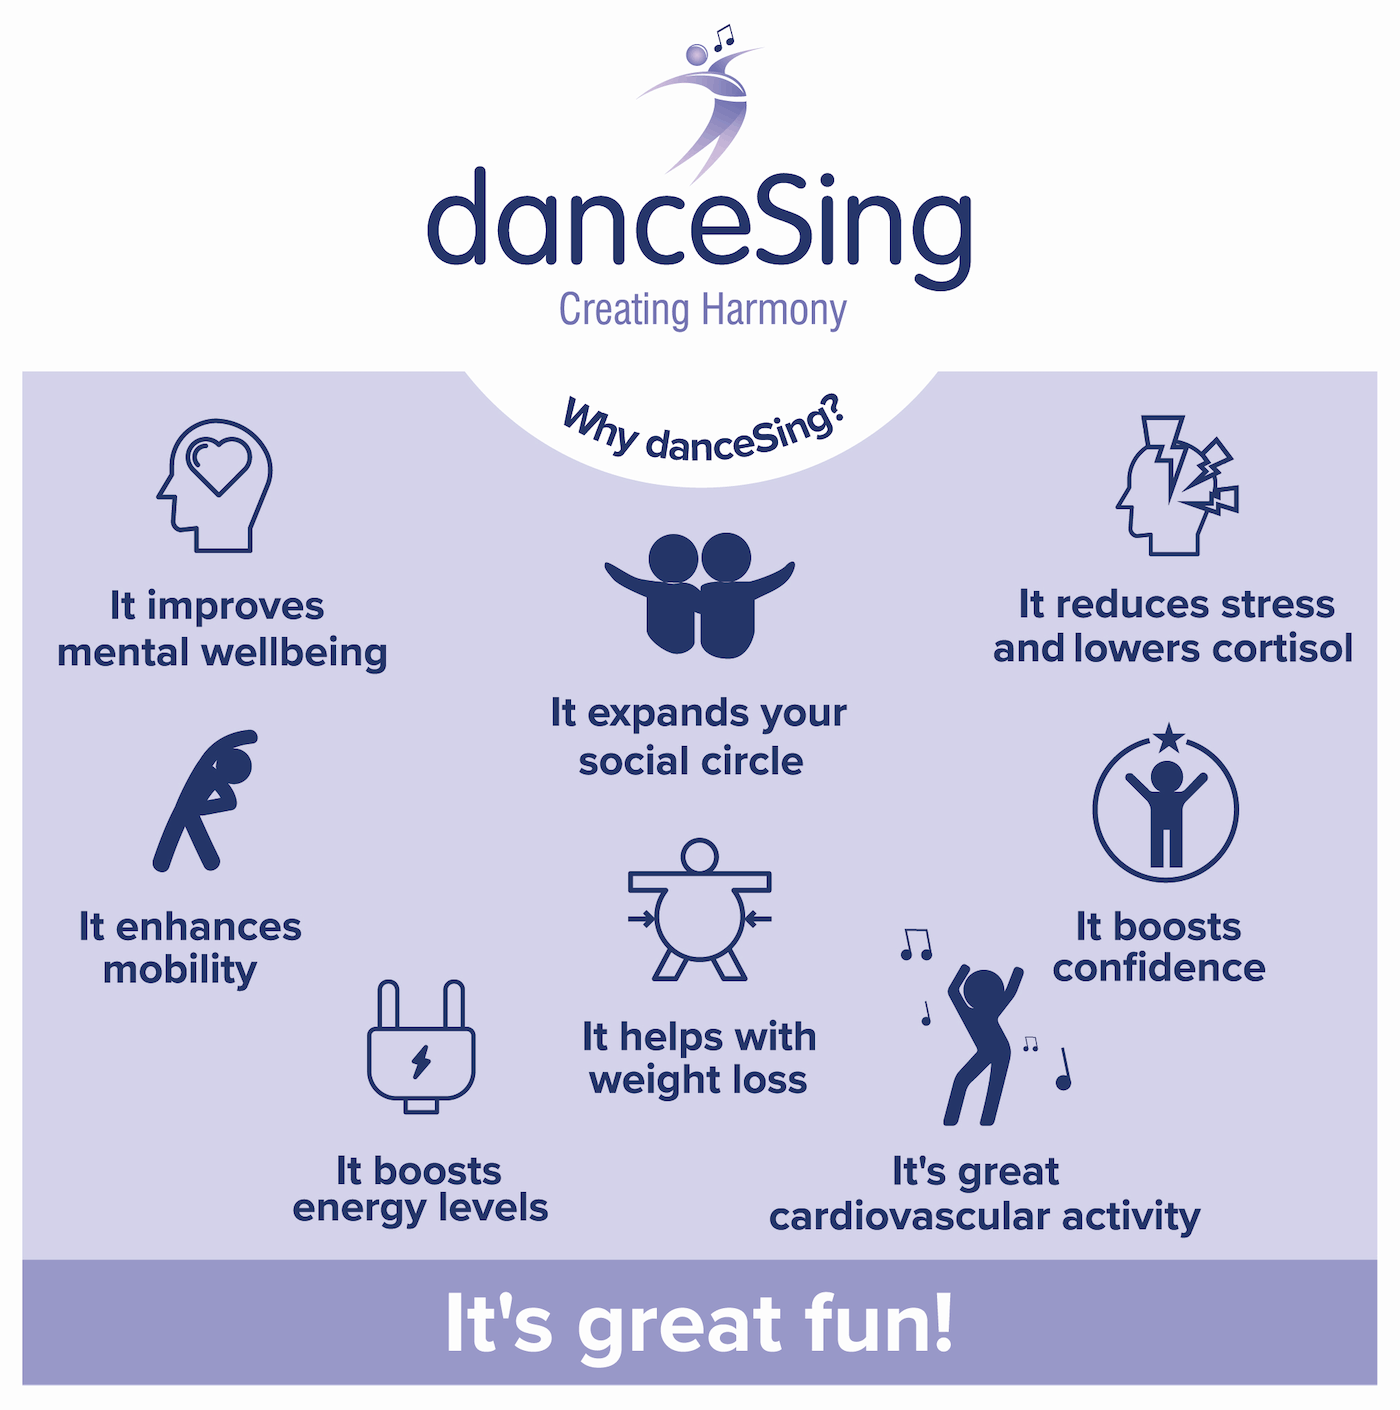 Why danceSing?